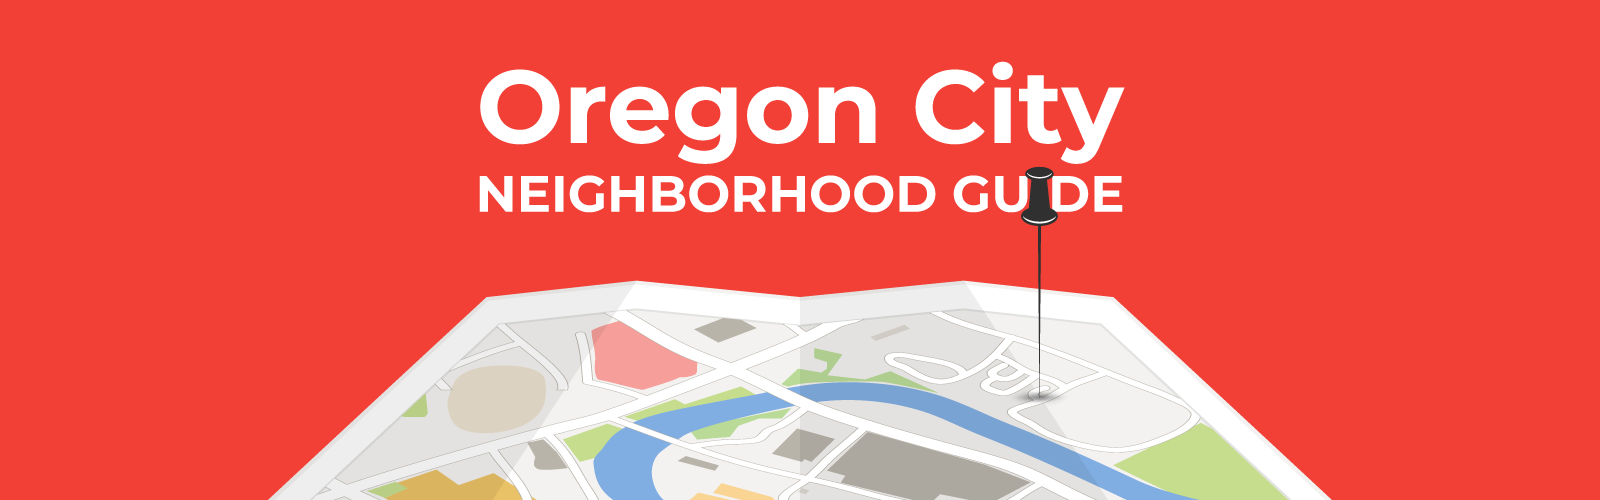 Oregon City Neighborhood Guide